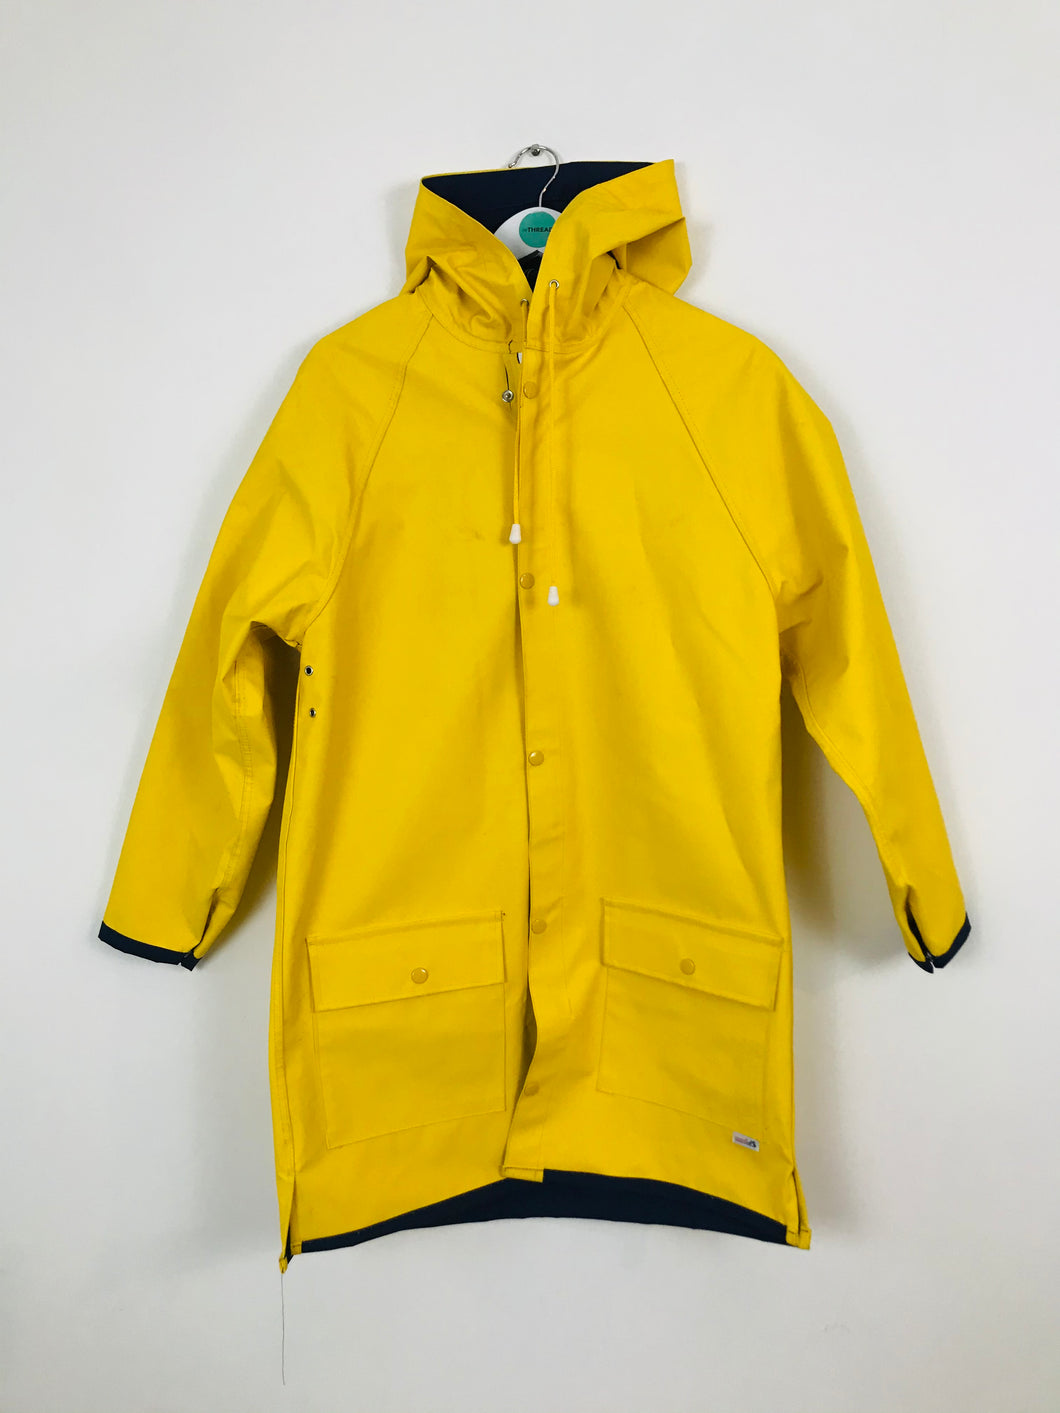 Modas Vintage Fisherman's Rain Coat Jacket | L UK12-14 | Yellow